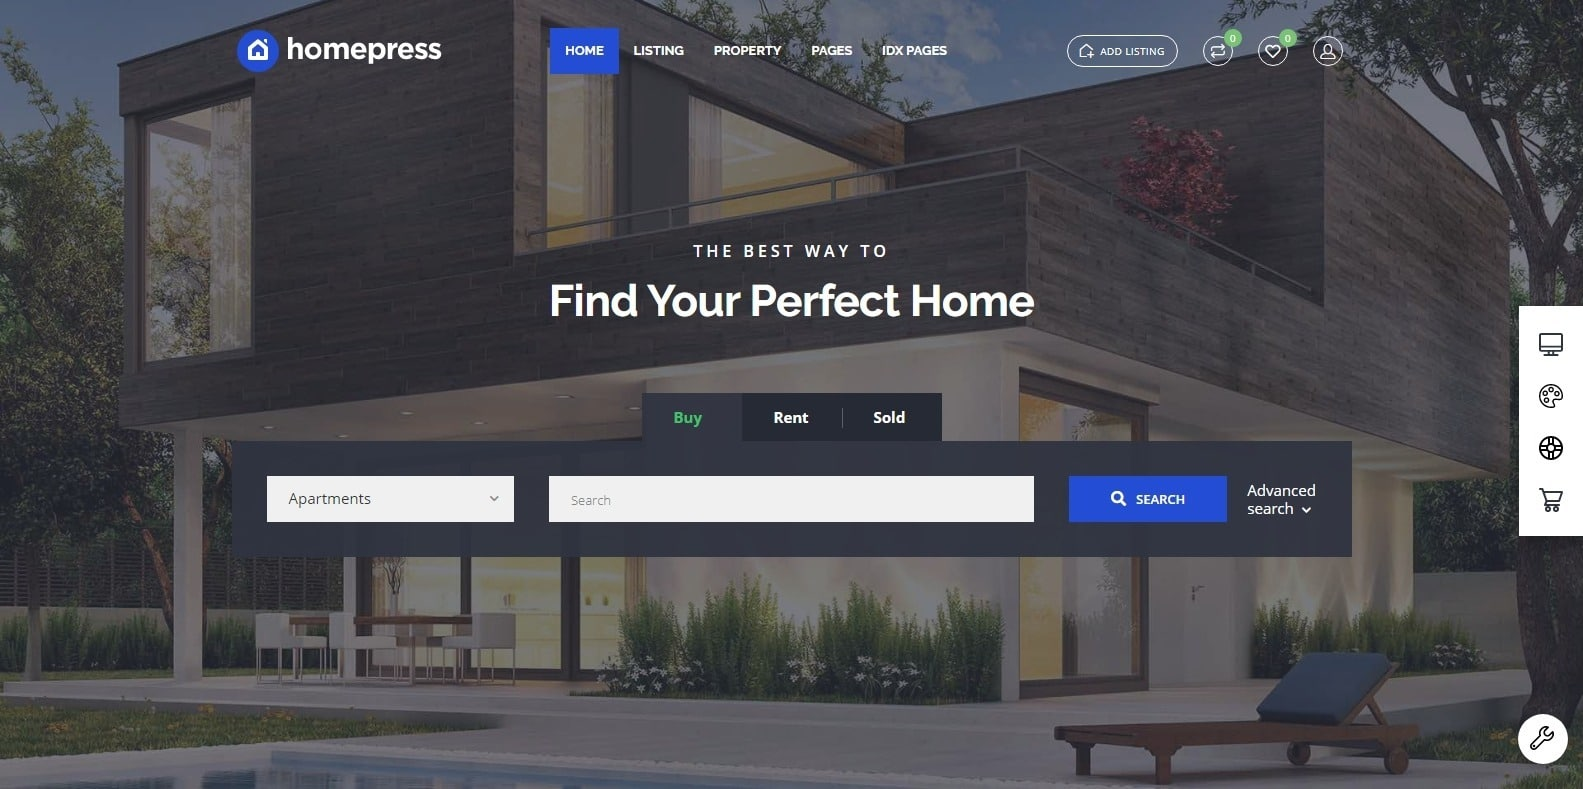 homepress-property-management-website-template